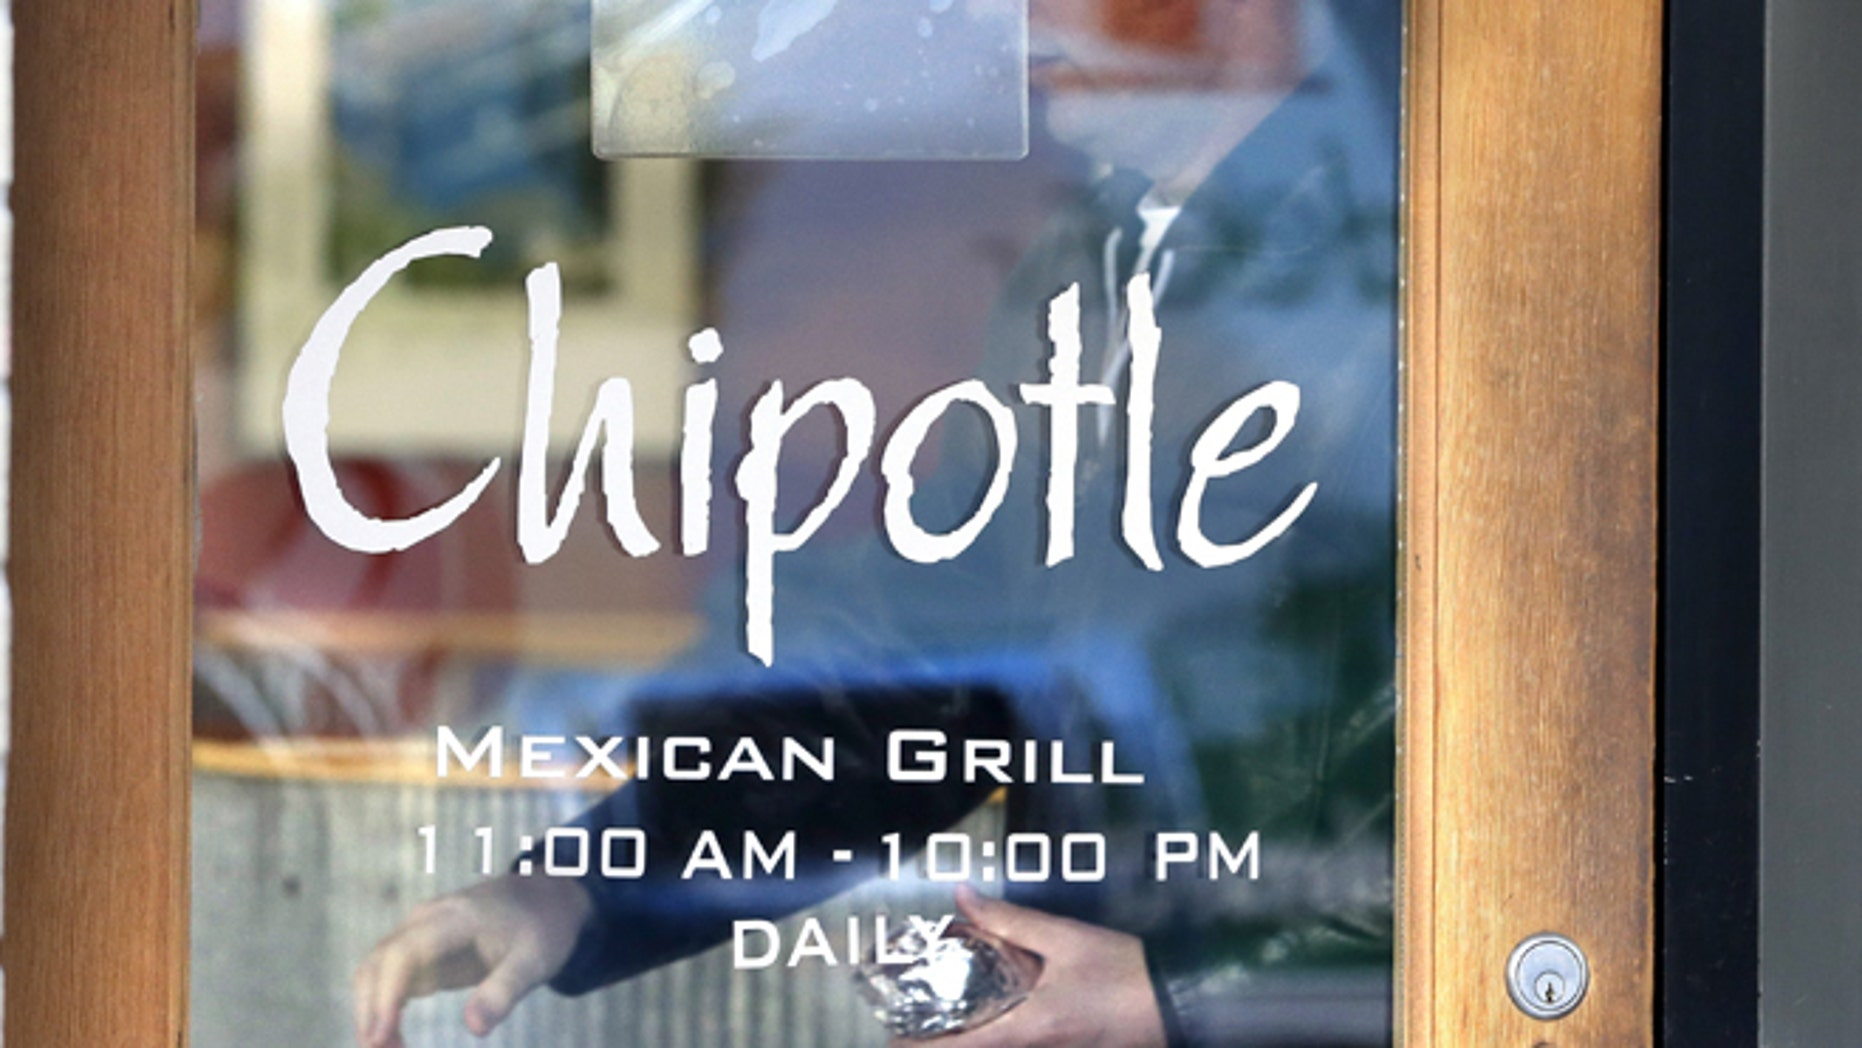 Chipotle may rehire manager who refused serving black men